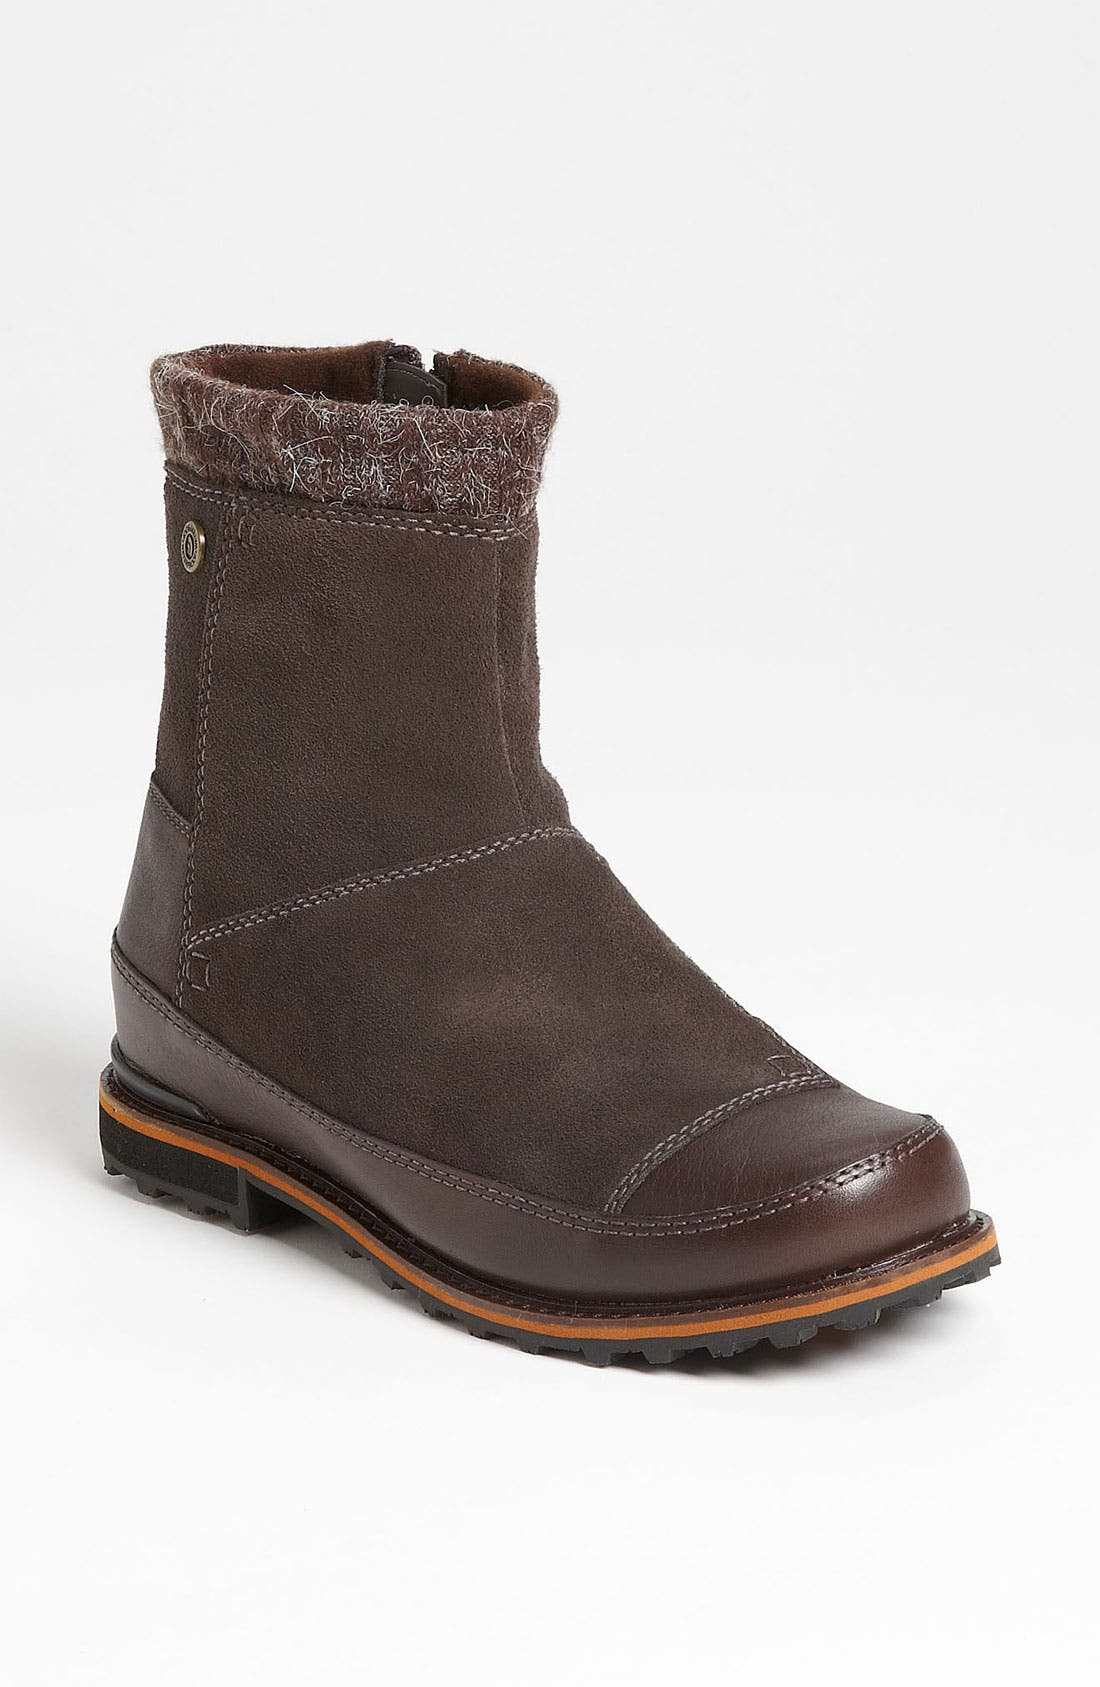 Alternate Image 1 Selected - The North Face 'Snowtropolis Mid' Boot